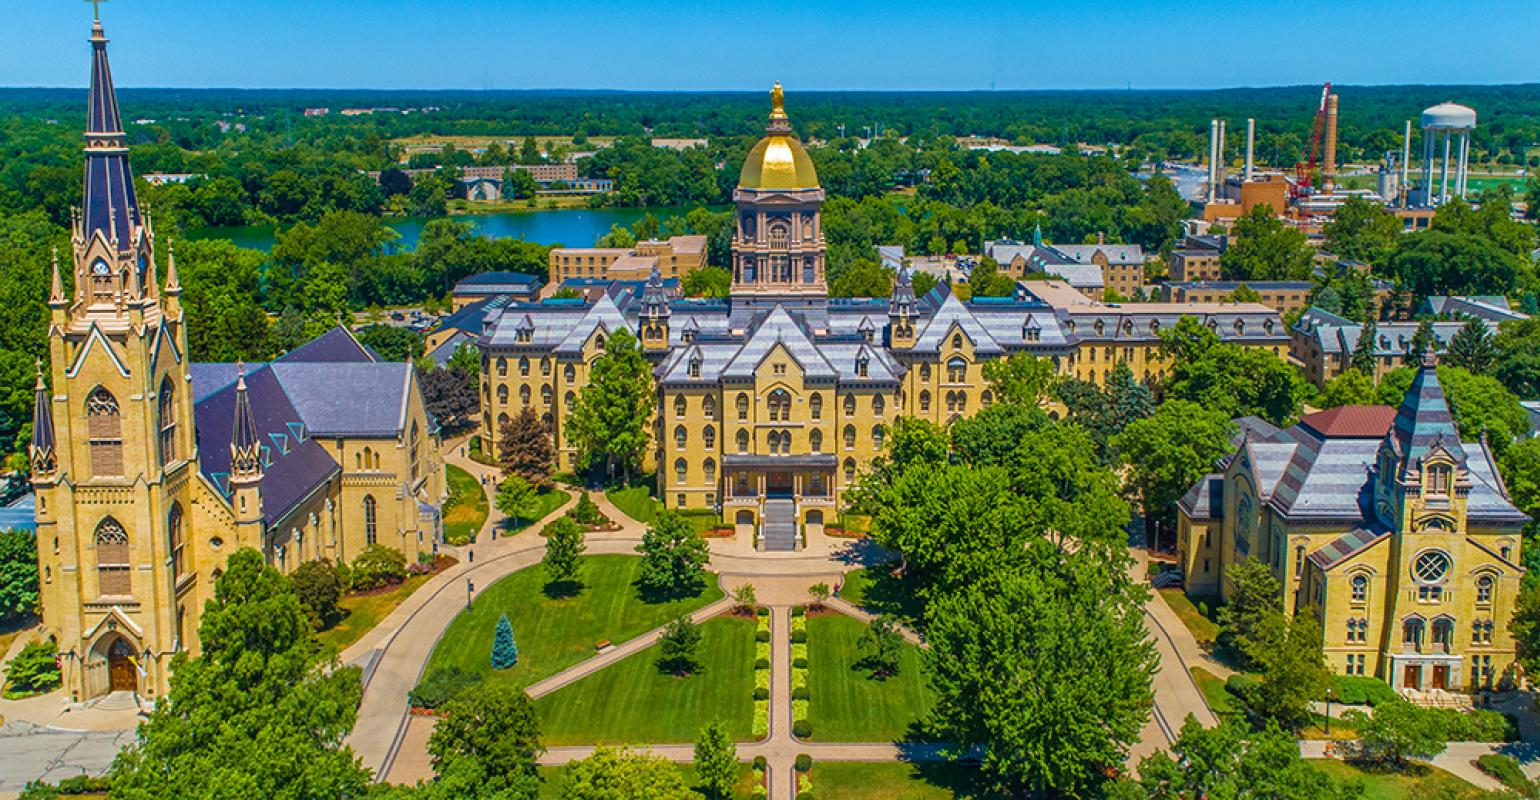 Where is Notre Dame University